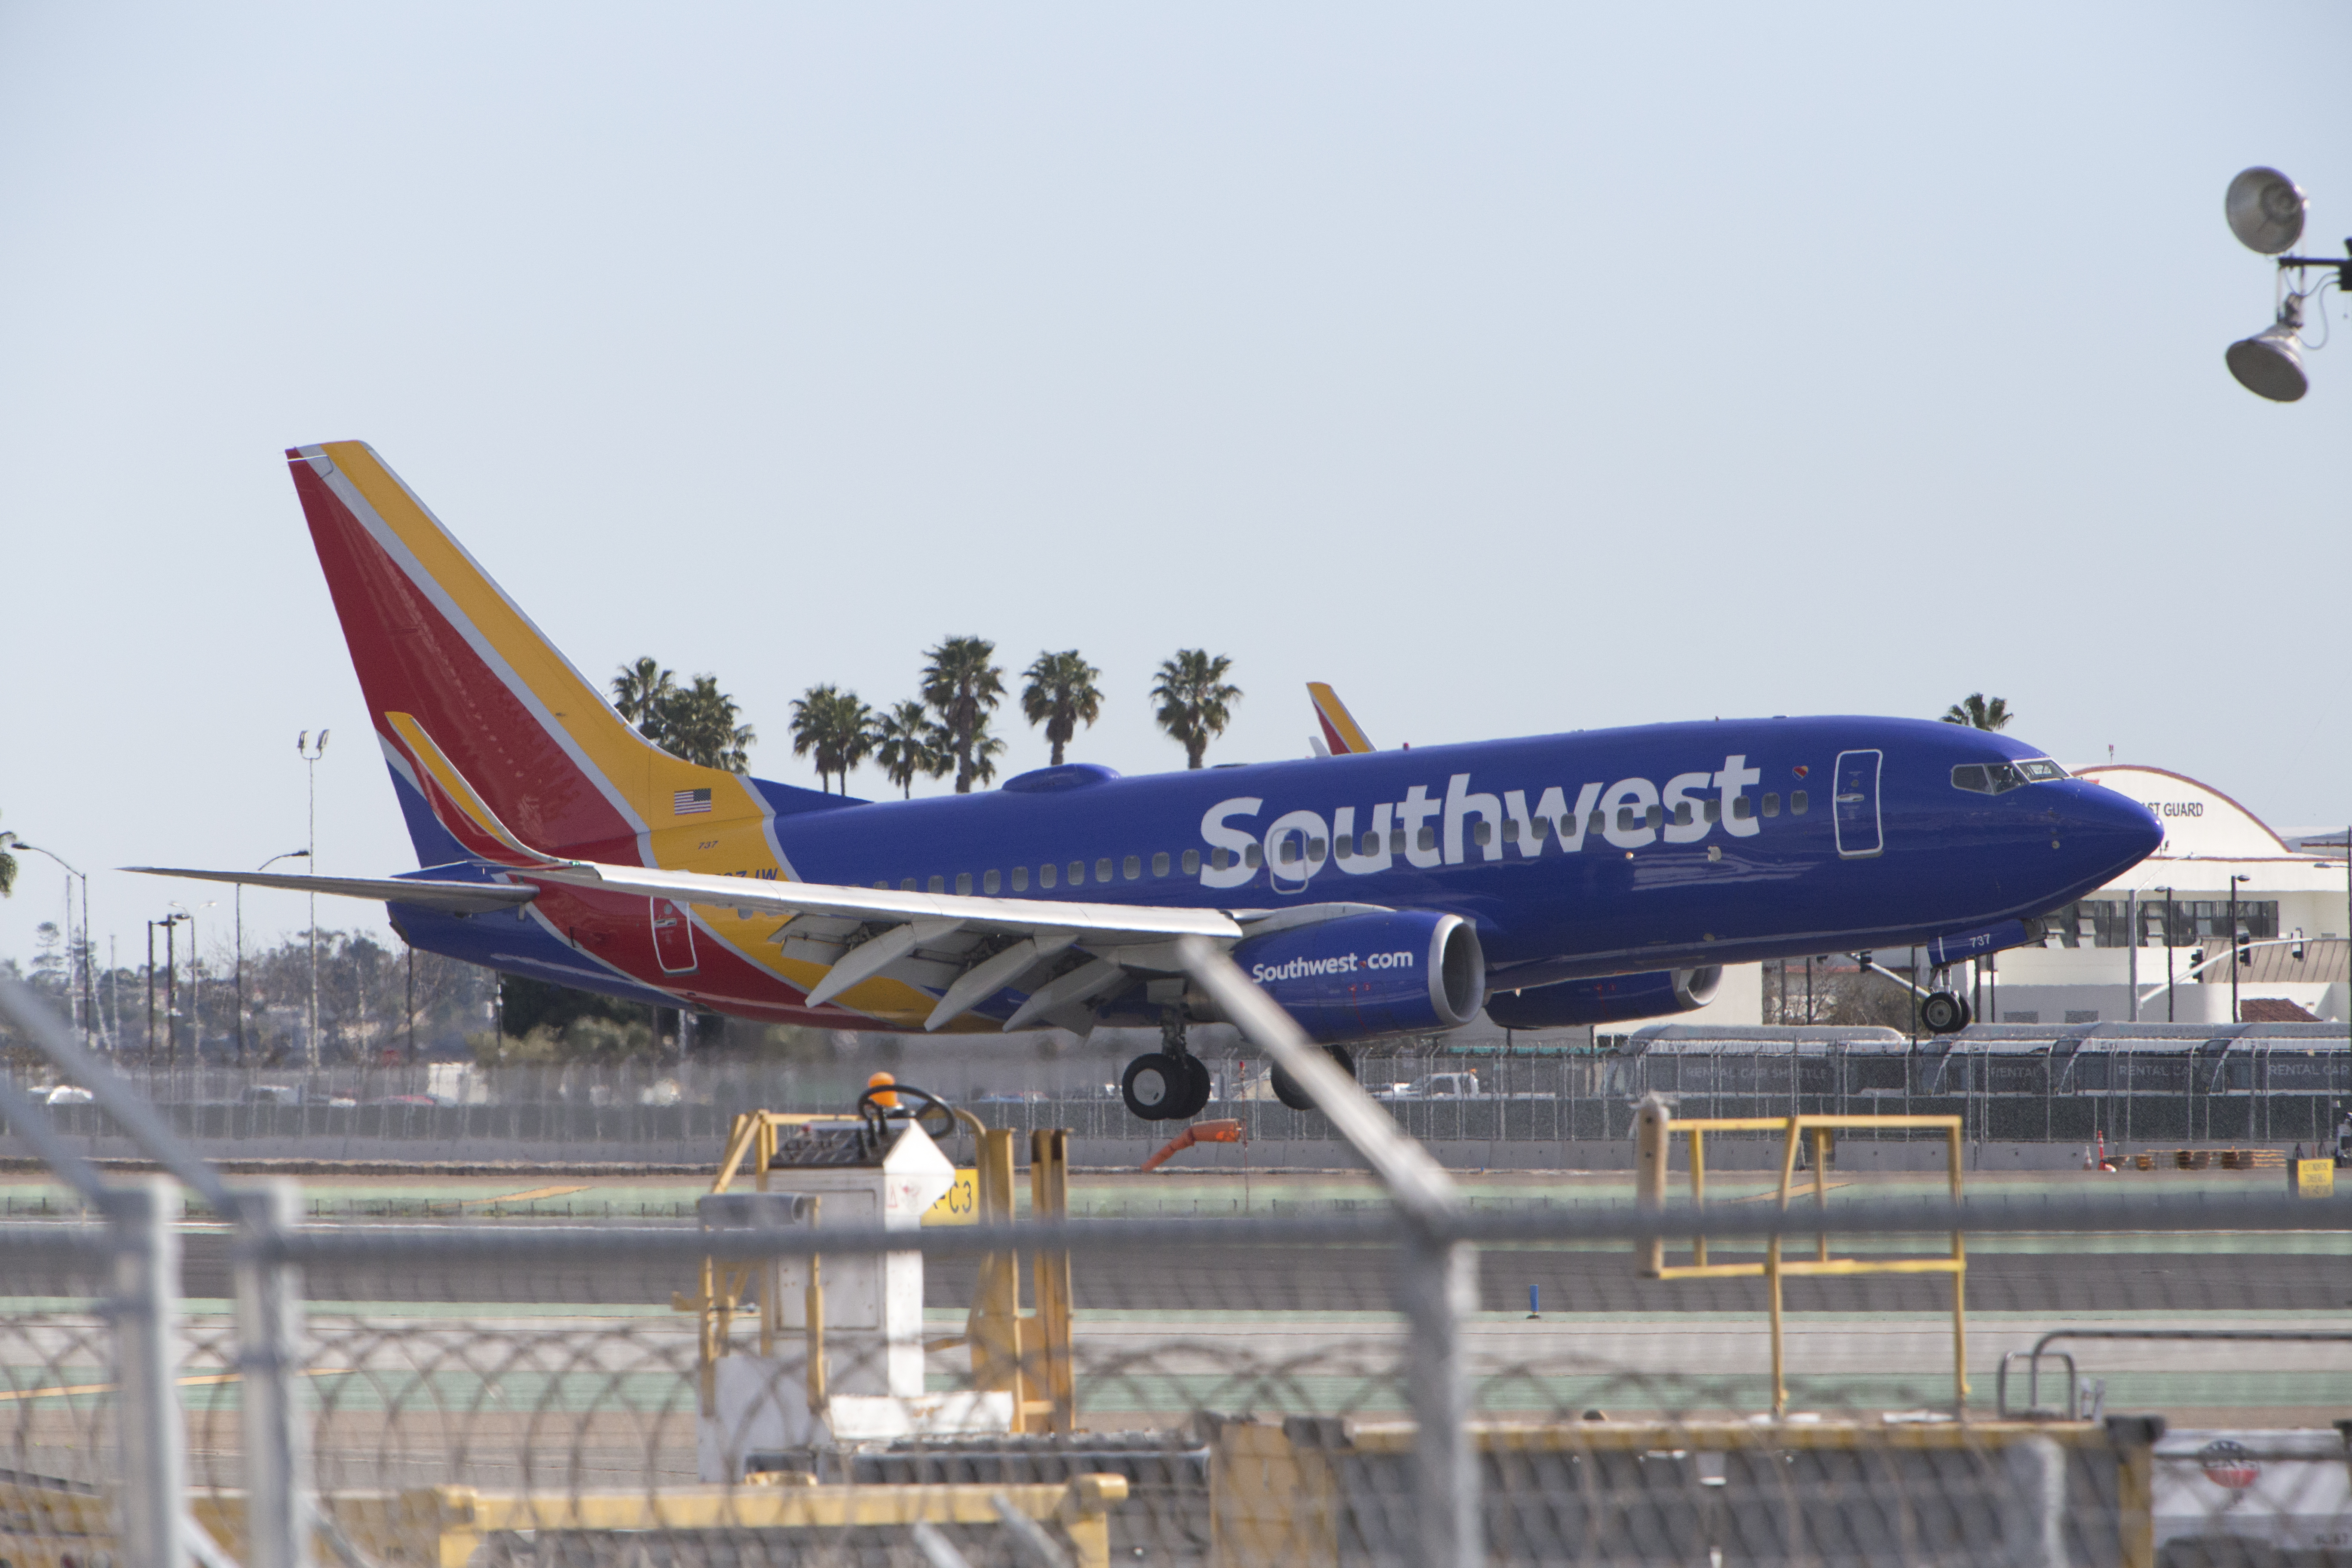 Southwest Boeing approaching airport